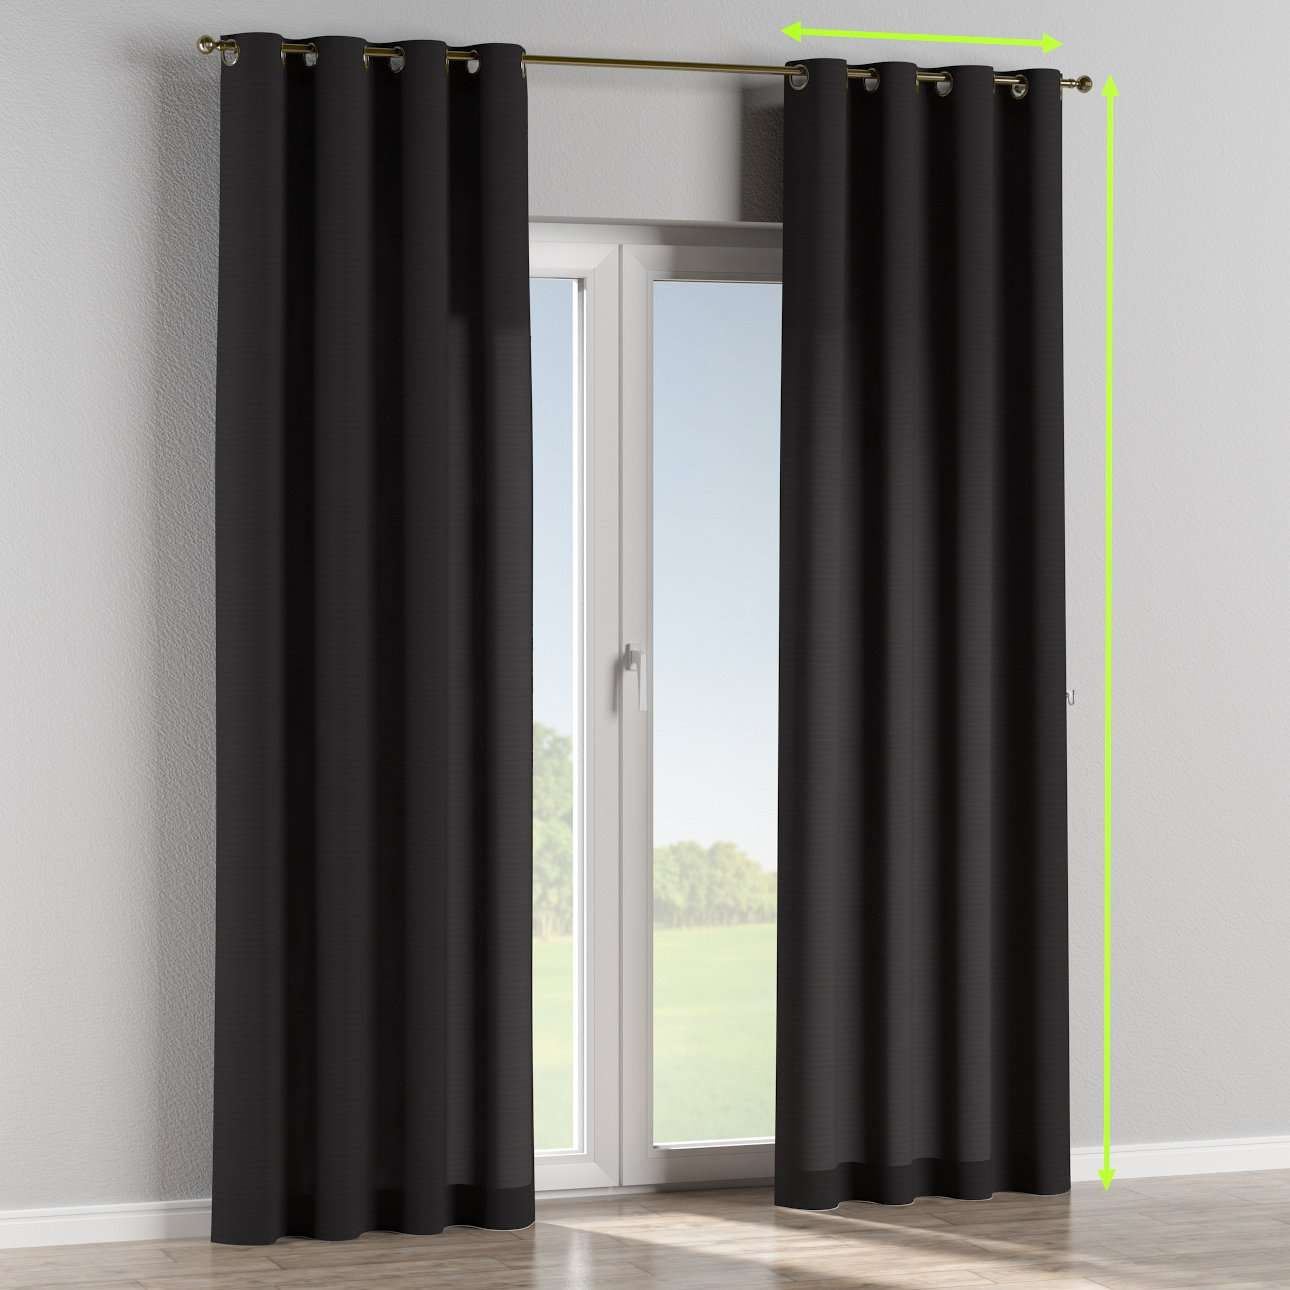 Eyelet curtains in collection Loneta , fabric: 133-99